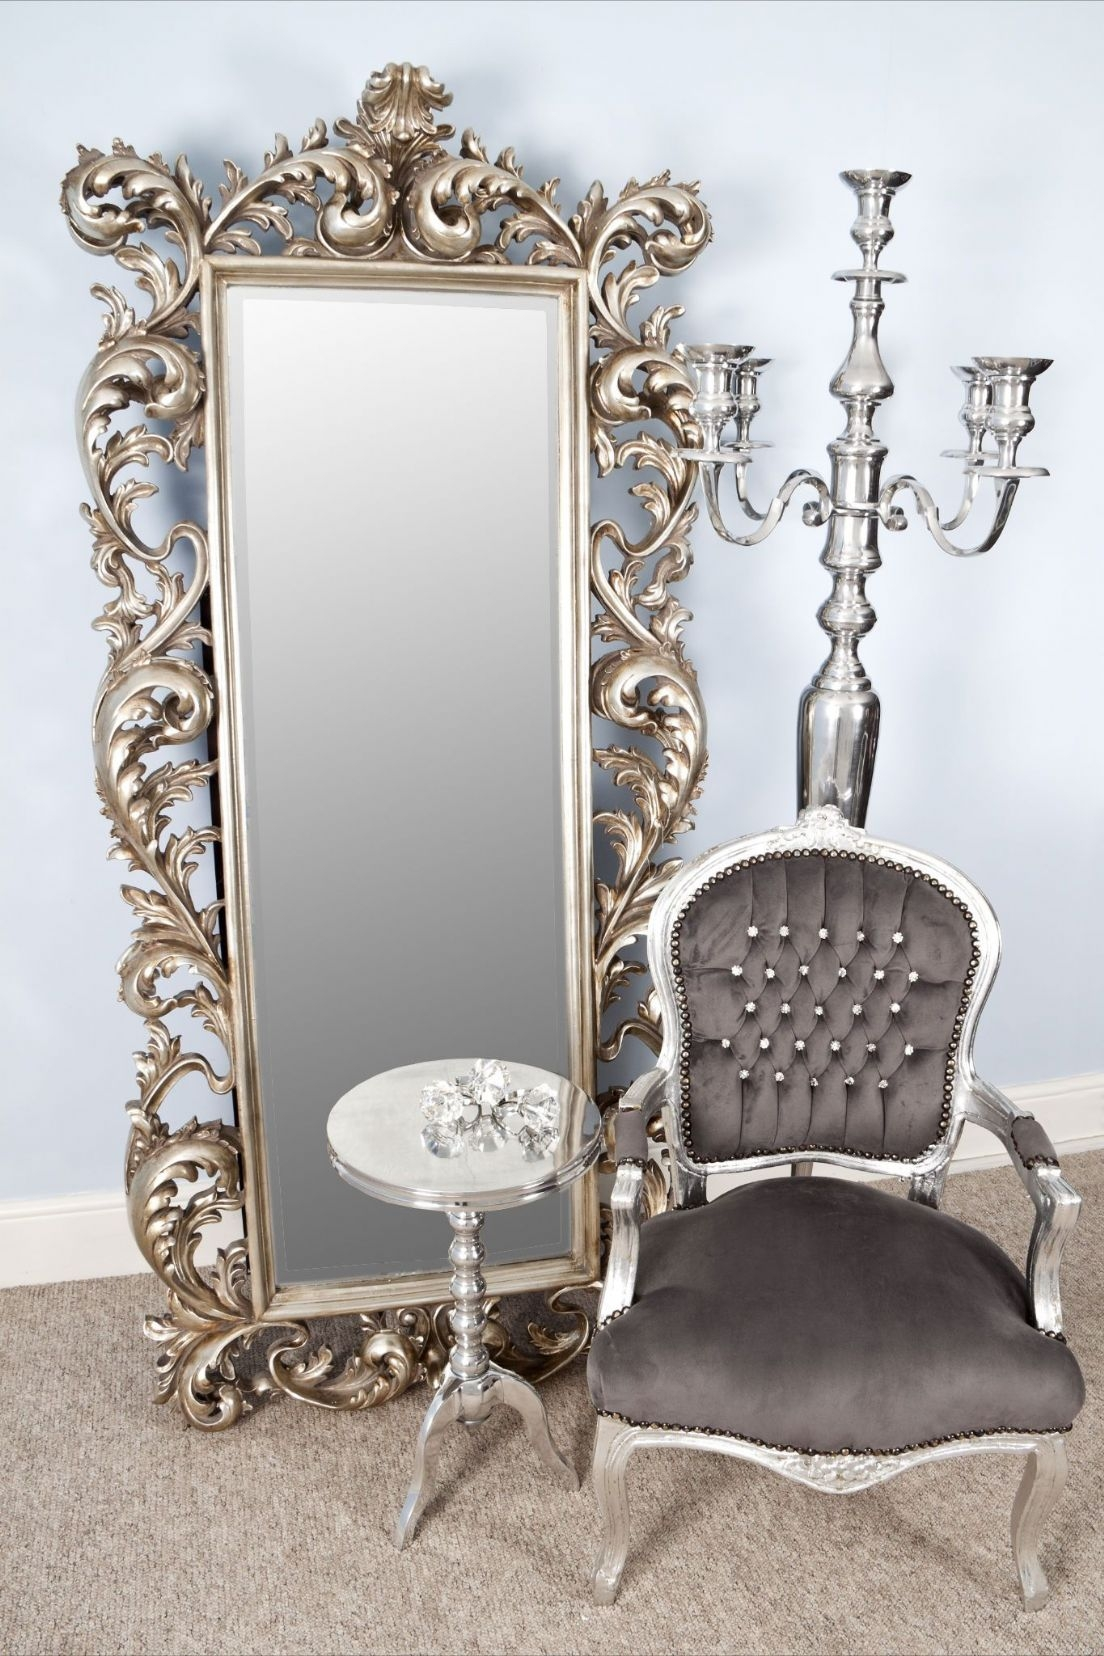 Nita Extra Large Silver Mirror 192 X 86 X 10 Cm Exclusive Mirrors Intended For Large Antique Silver Mirror (View 5 of 15)